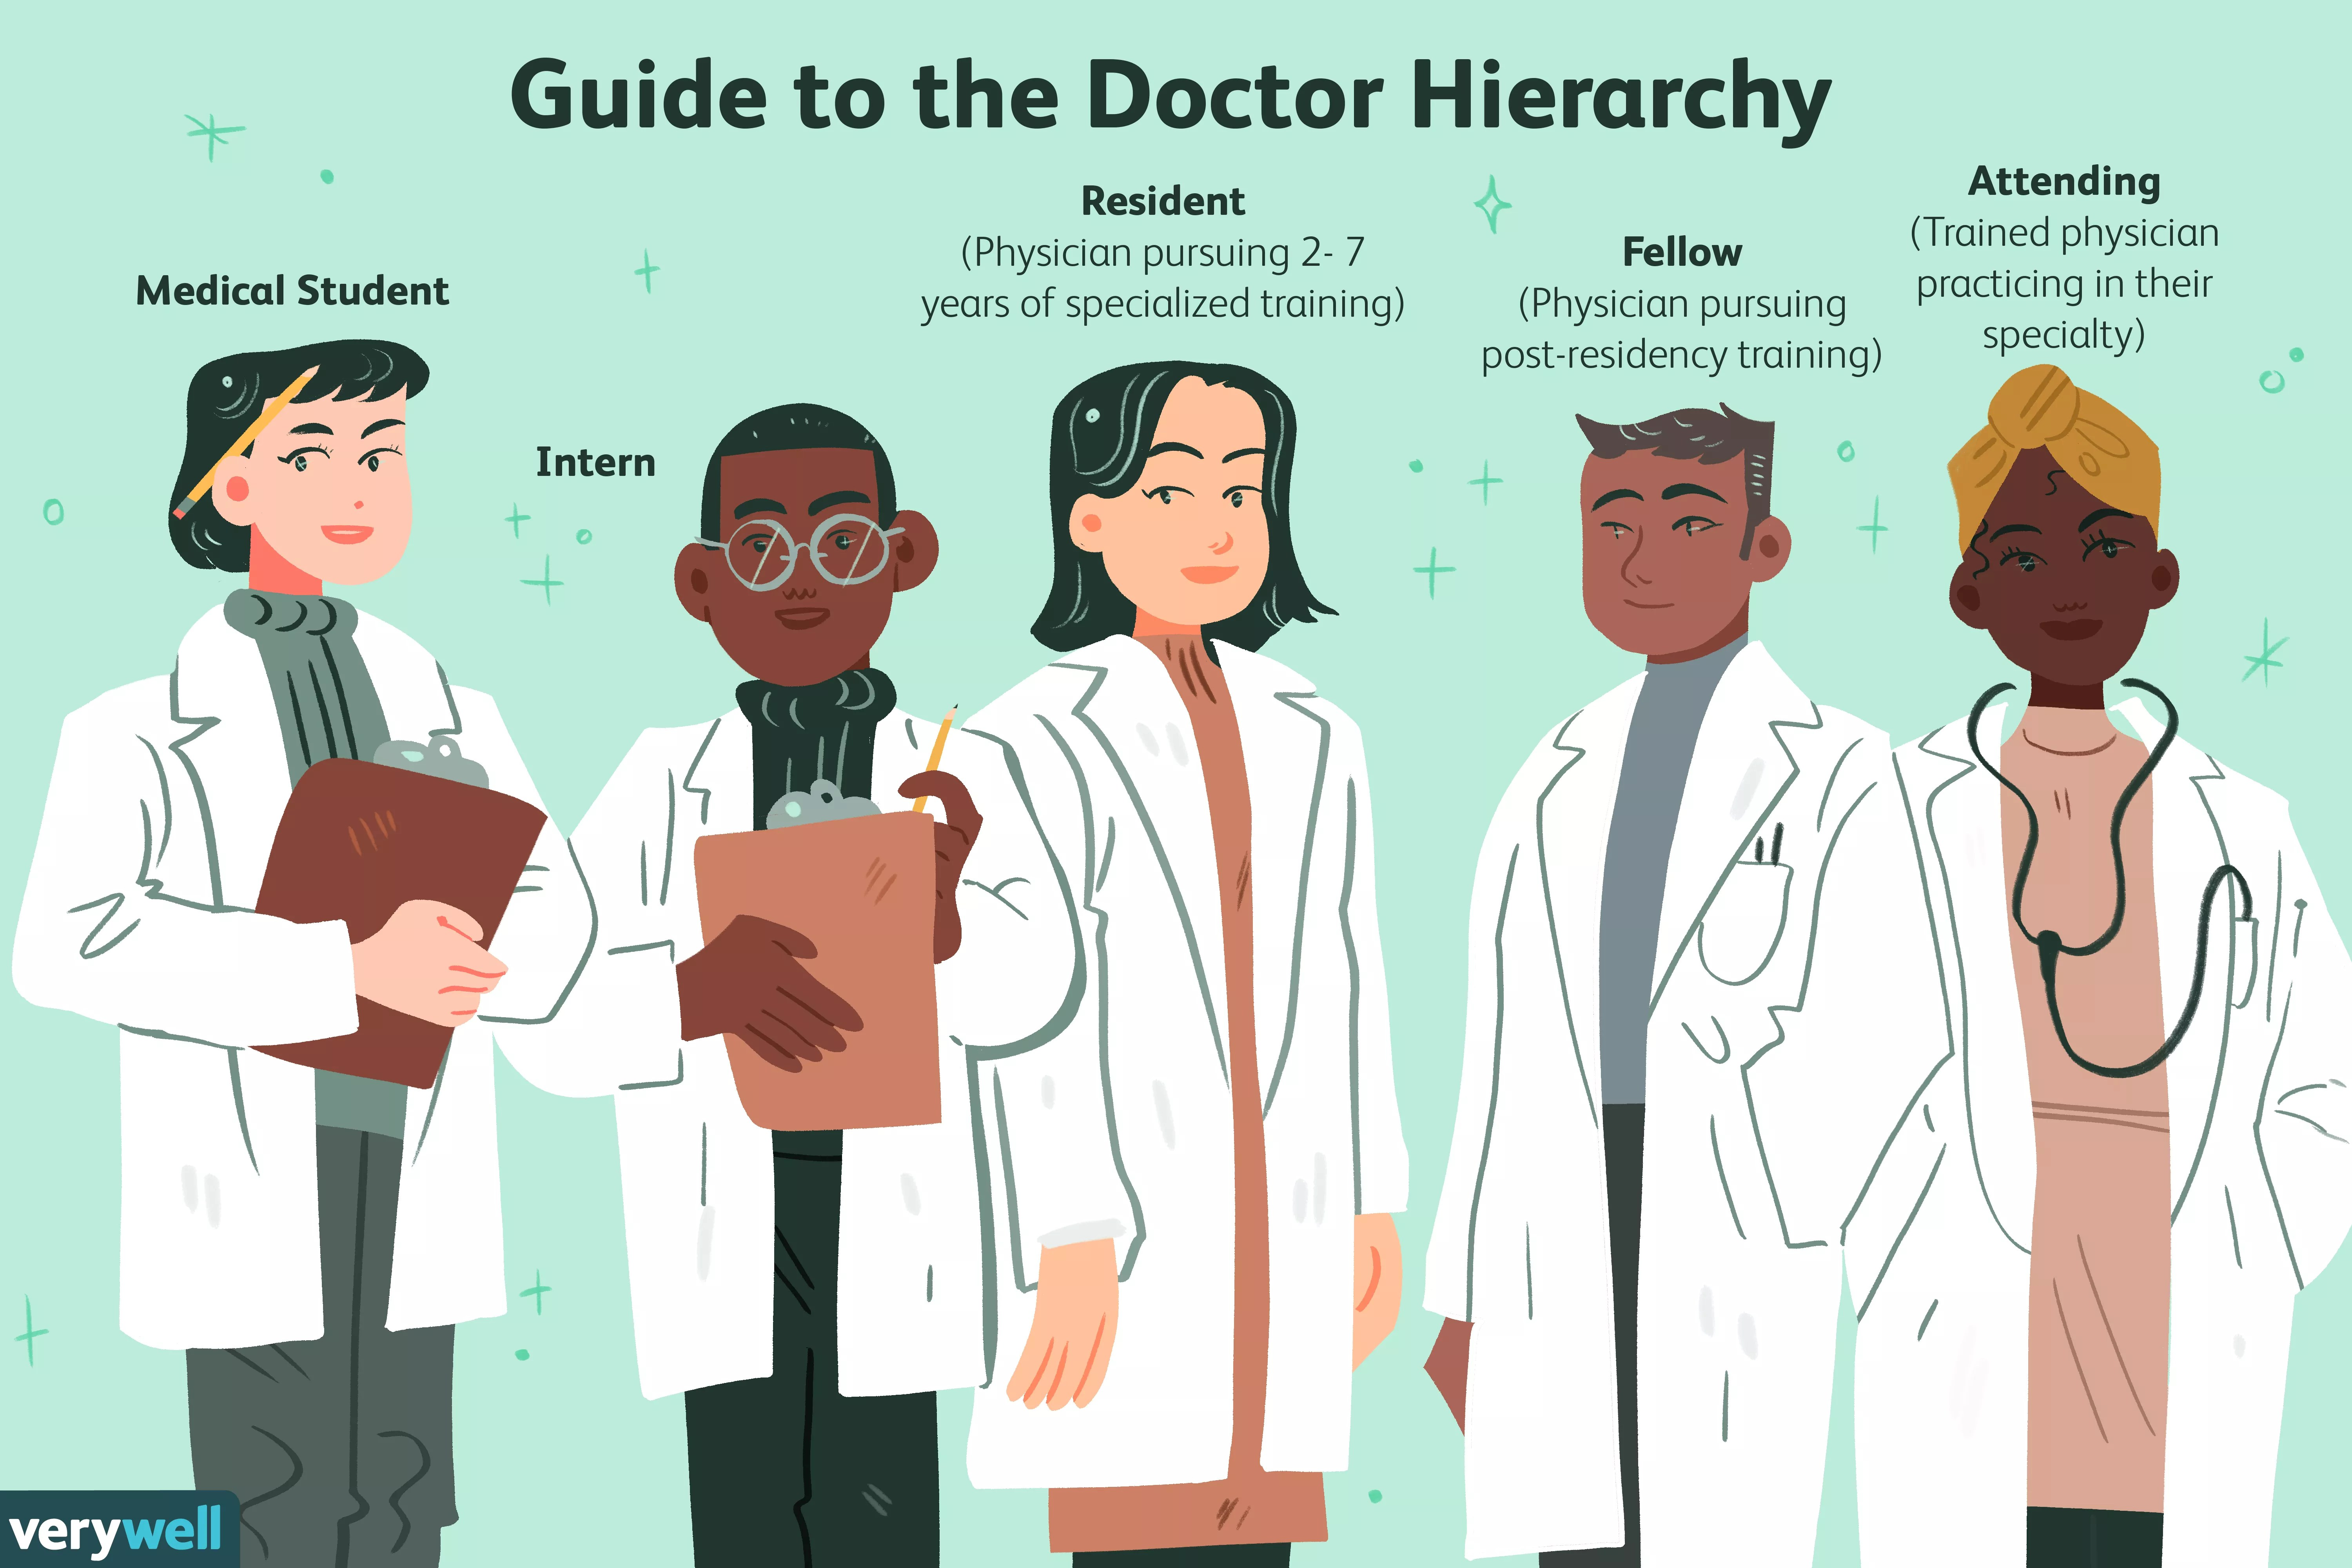 Guide to the Doctor Hierarchy